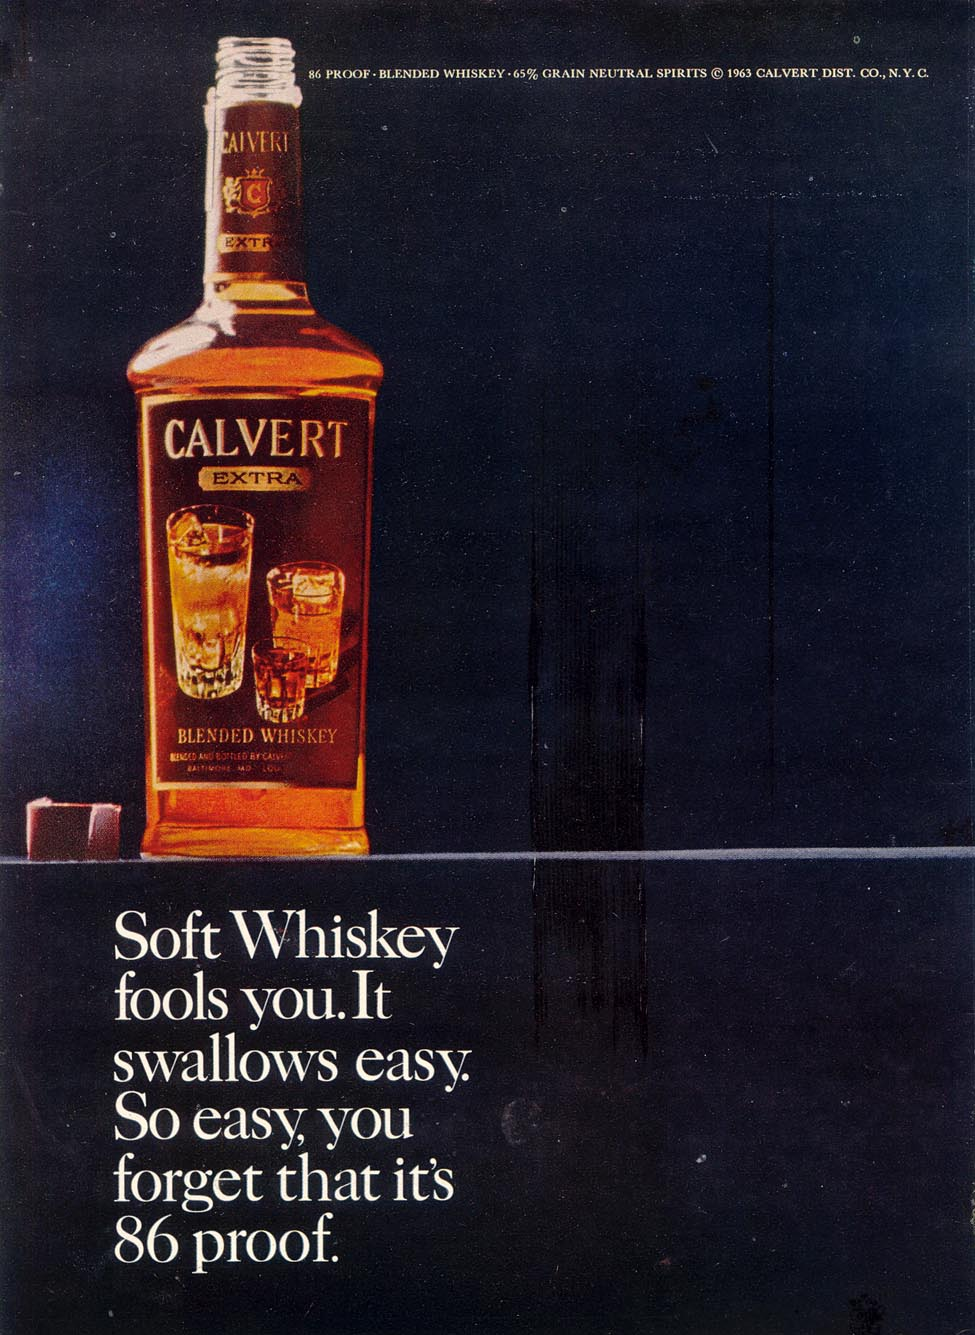 CALVERT EXTRA WHISKEY TIME 10/25/1963 p. 96